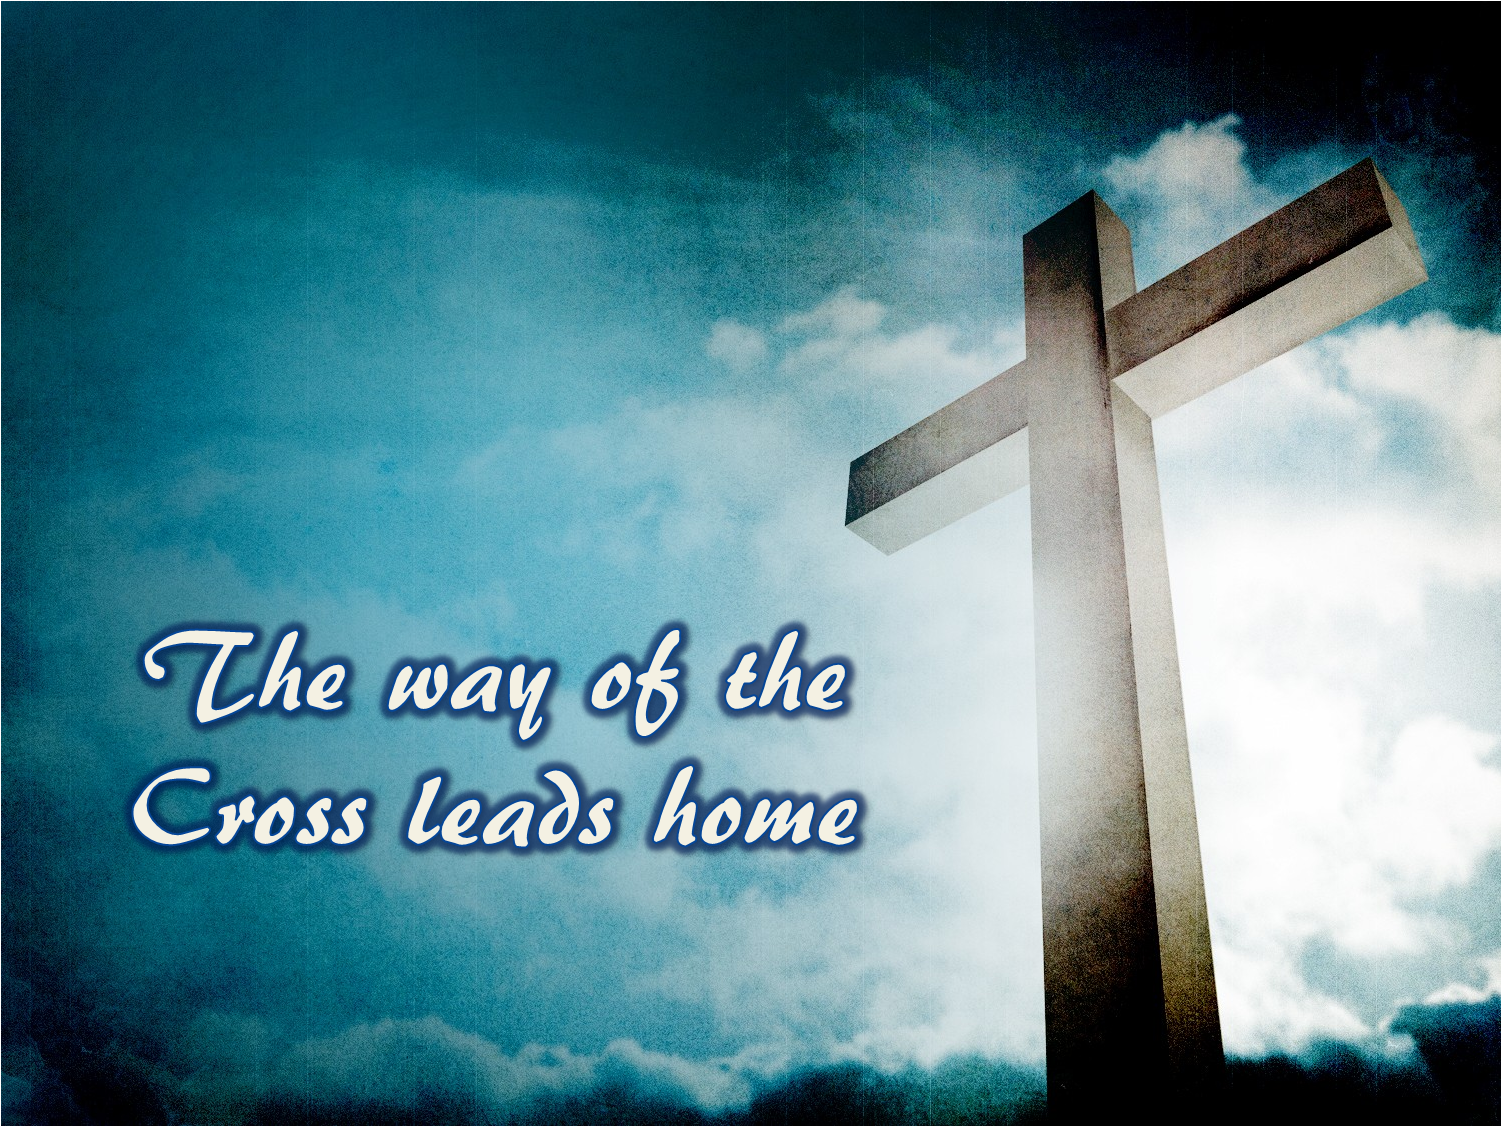 ♫ ♪ The way of the cross leads home, ♪ ♫ The way of the cross leads home, ♫ ♪ It is sweet to know as I onward go, ♪ ♫ The… | The cross of christ, 1 corinthians, God